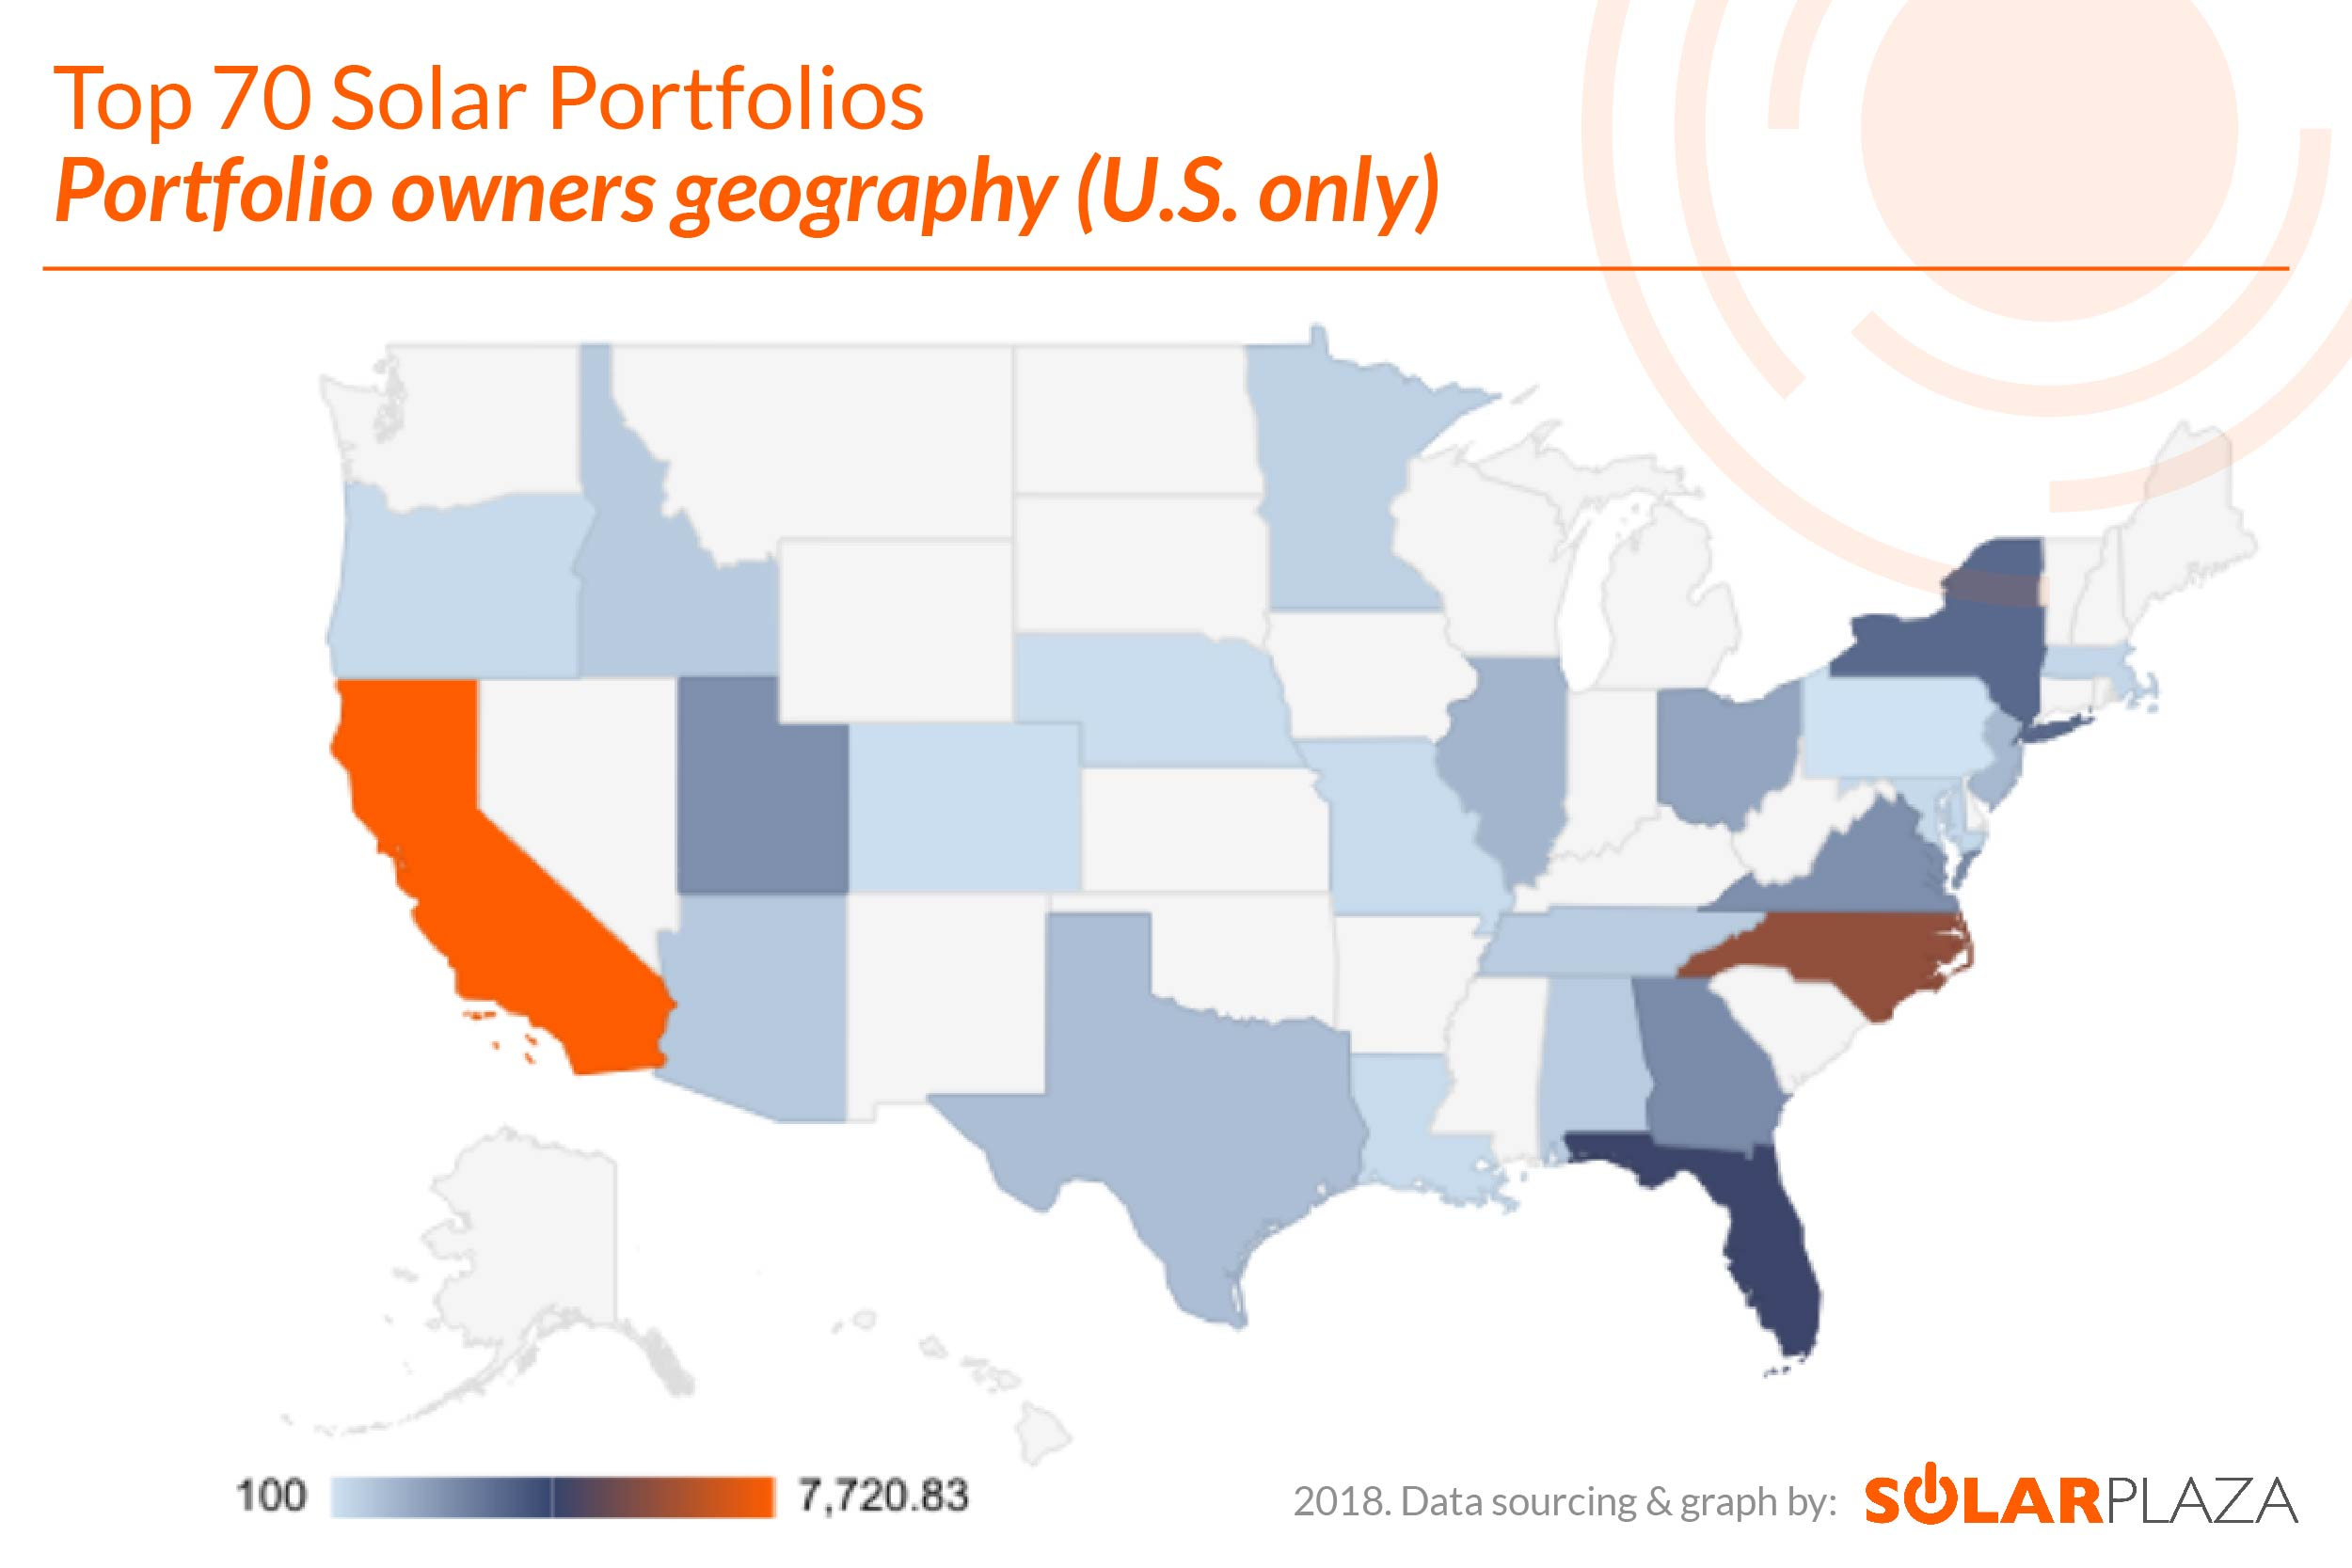 Figure 2: Top 70. Solar Portfolios- Portfolio owners geography (U.S. only)